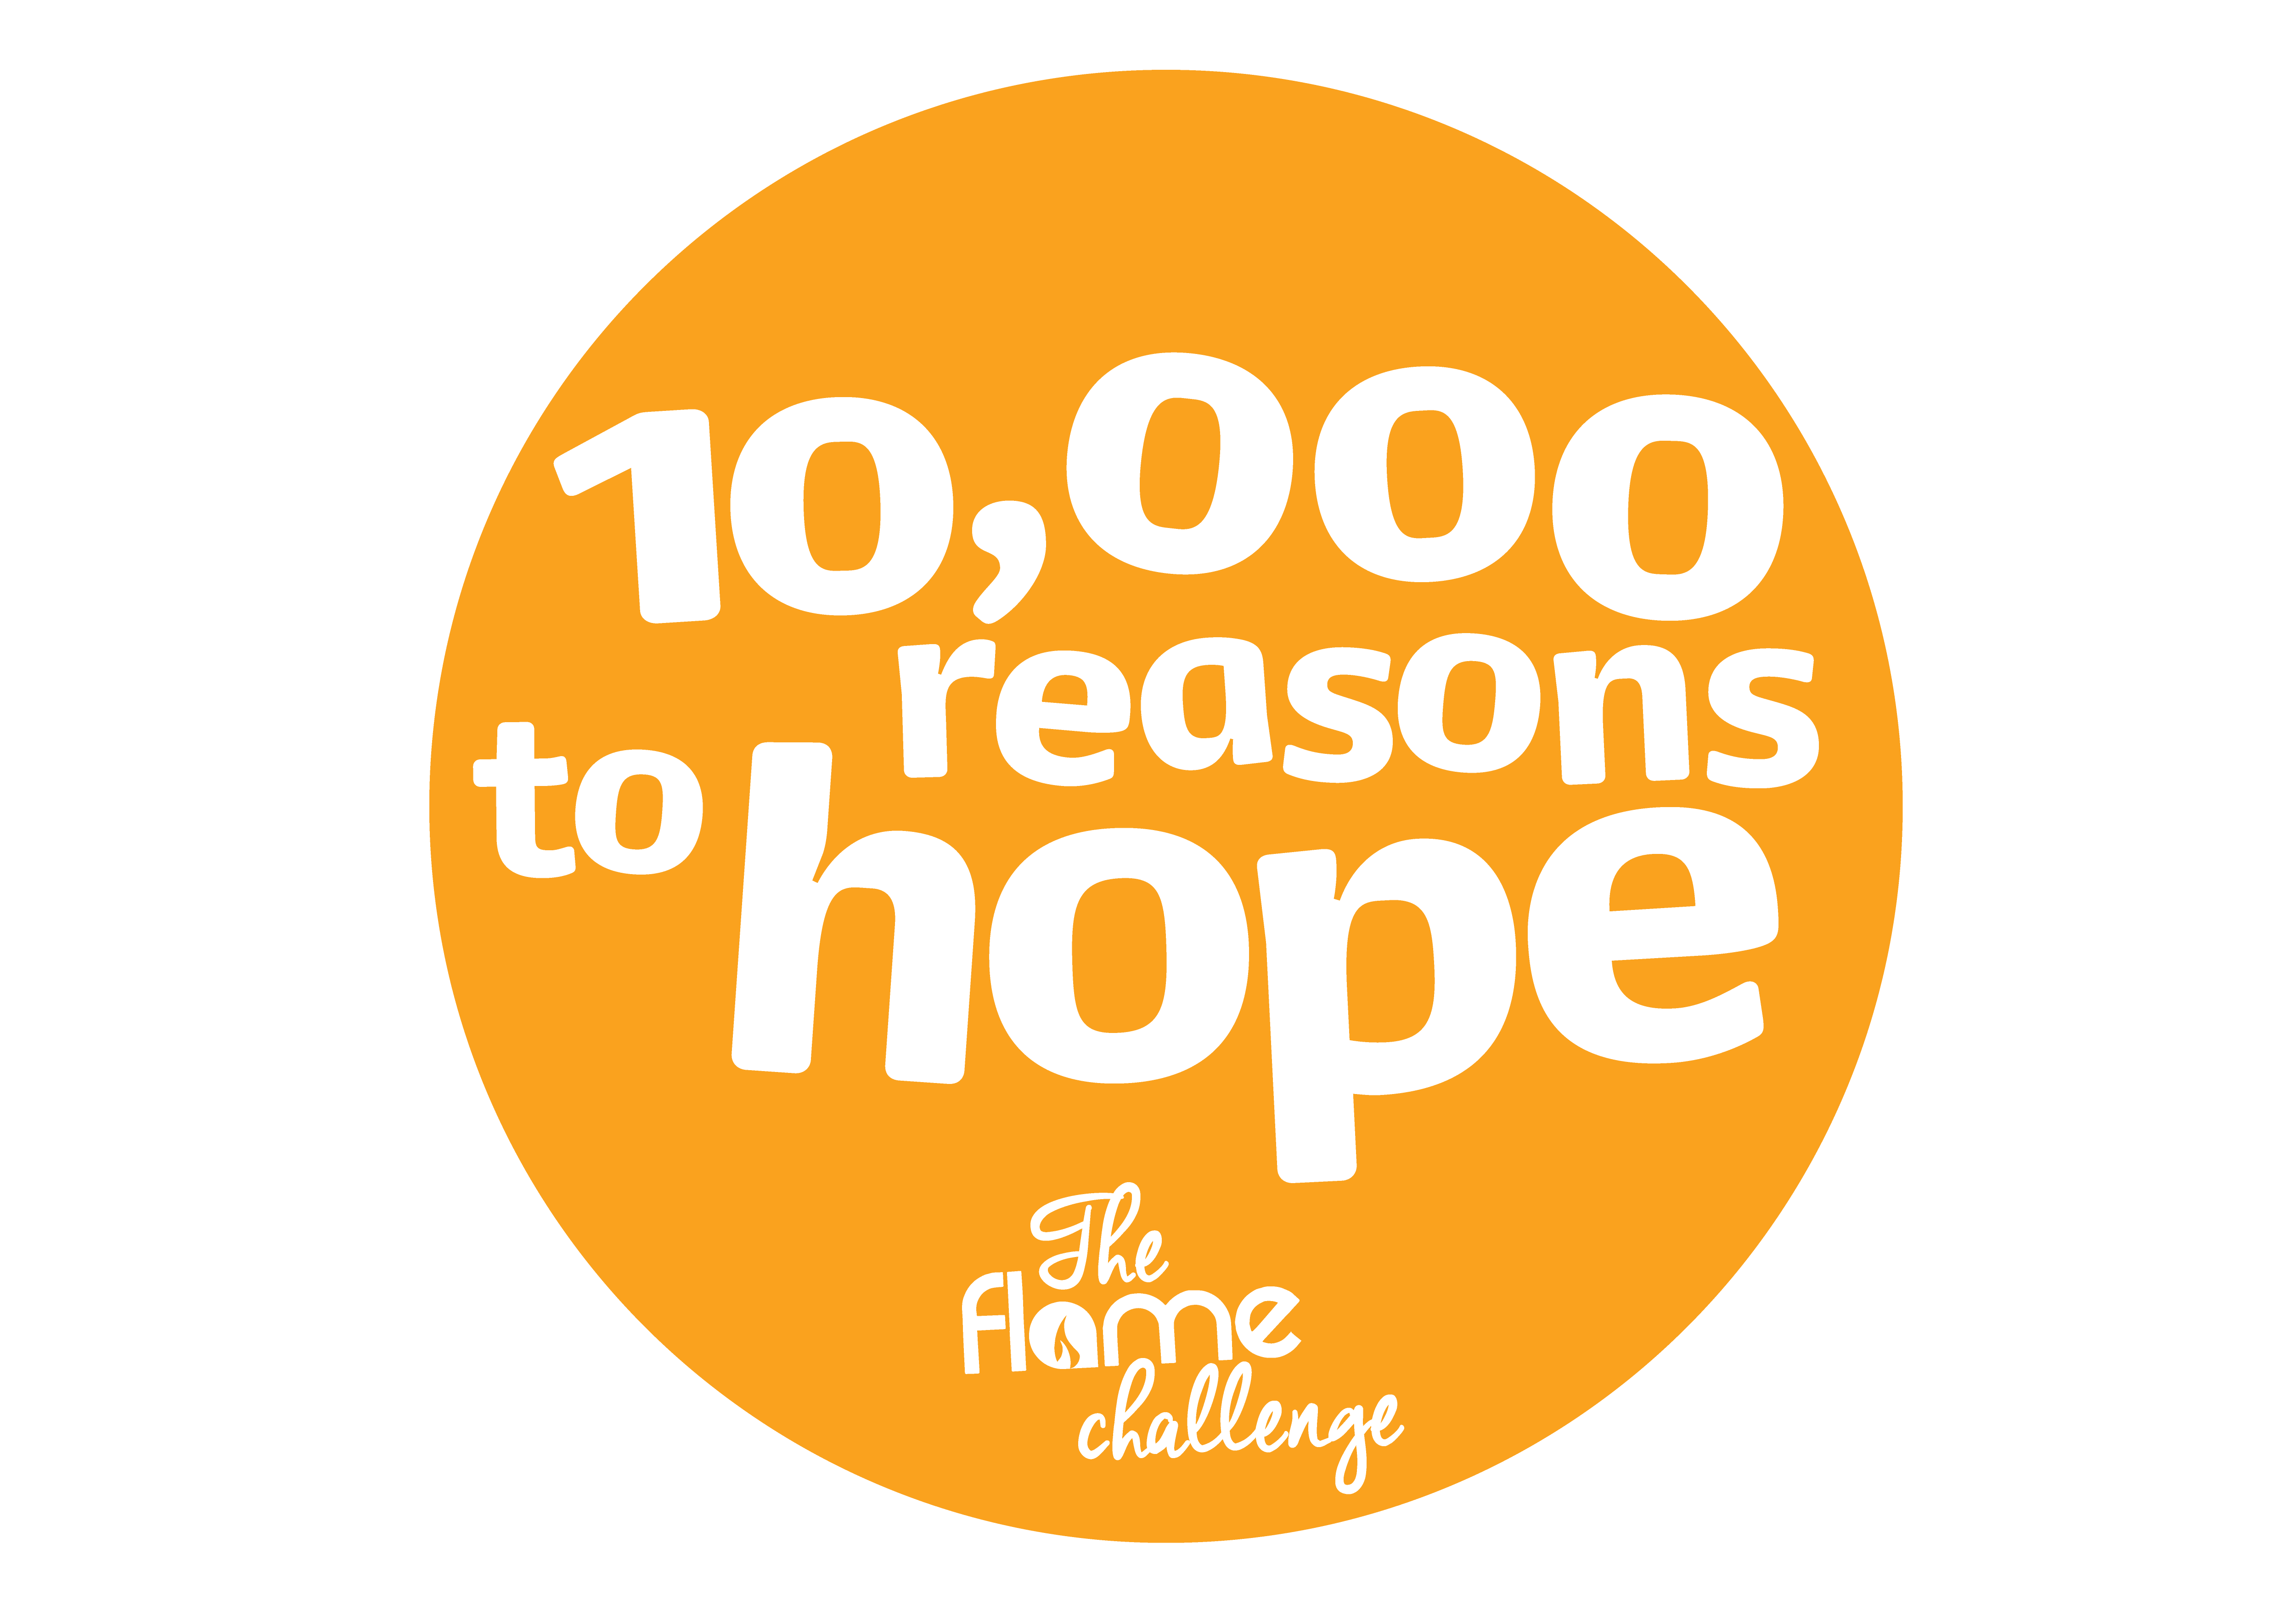 Orange circular logo reading: The Flame Challenge: 10,000 reasons to hope